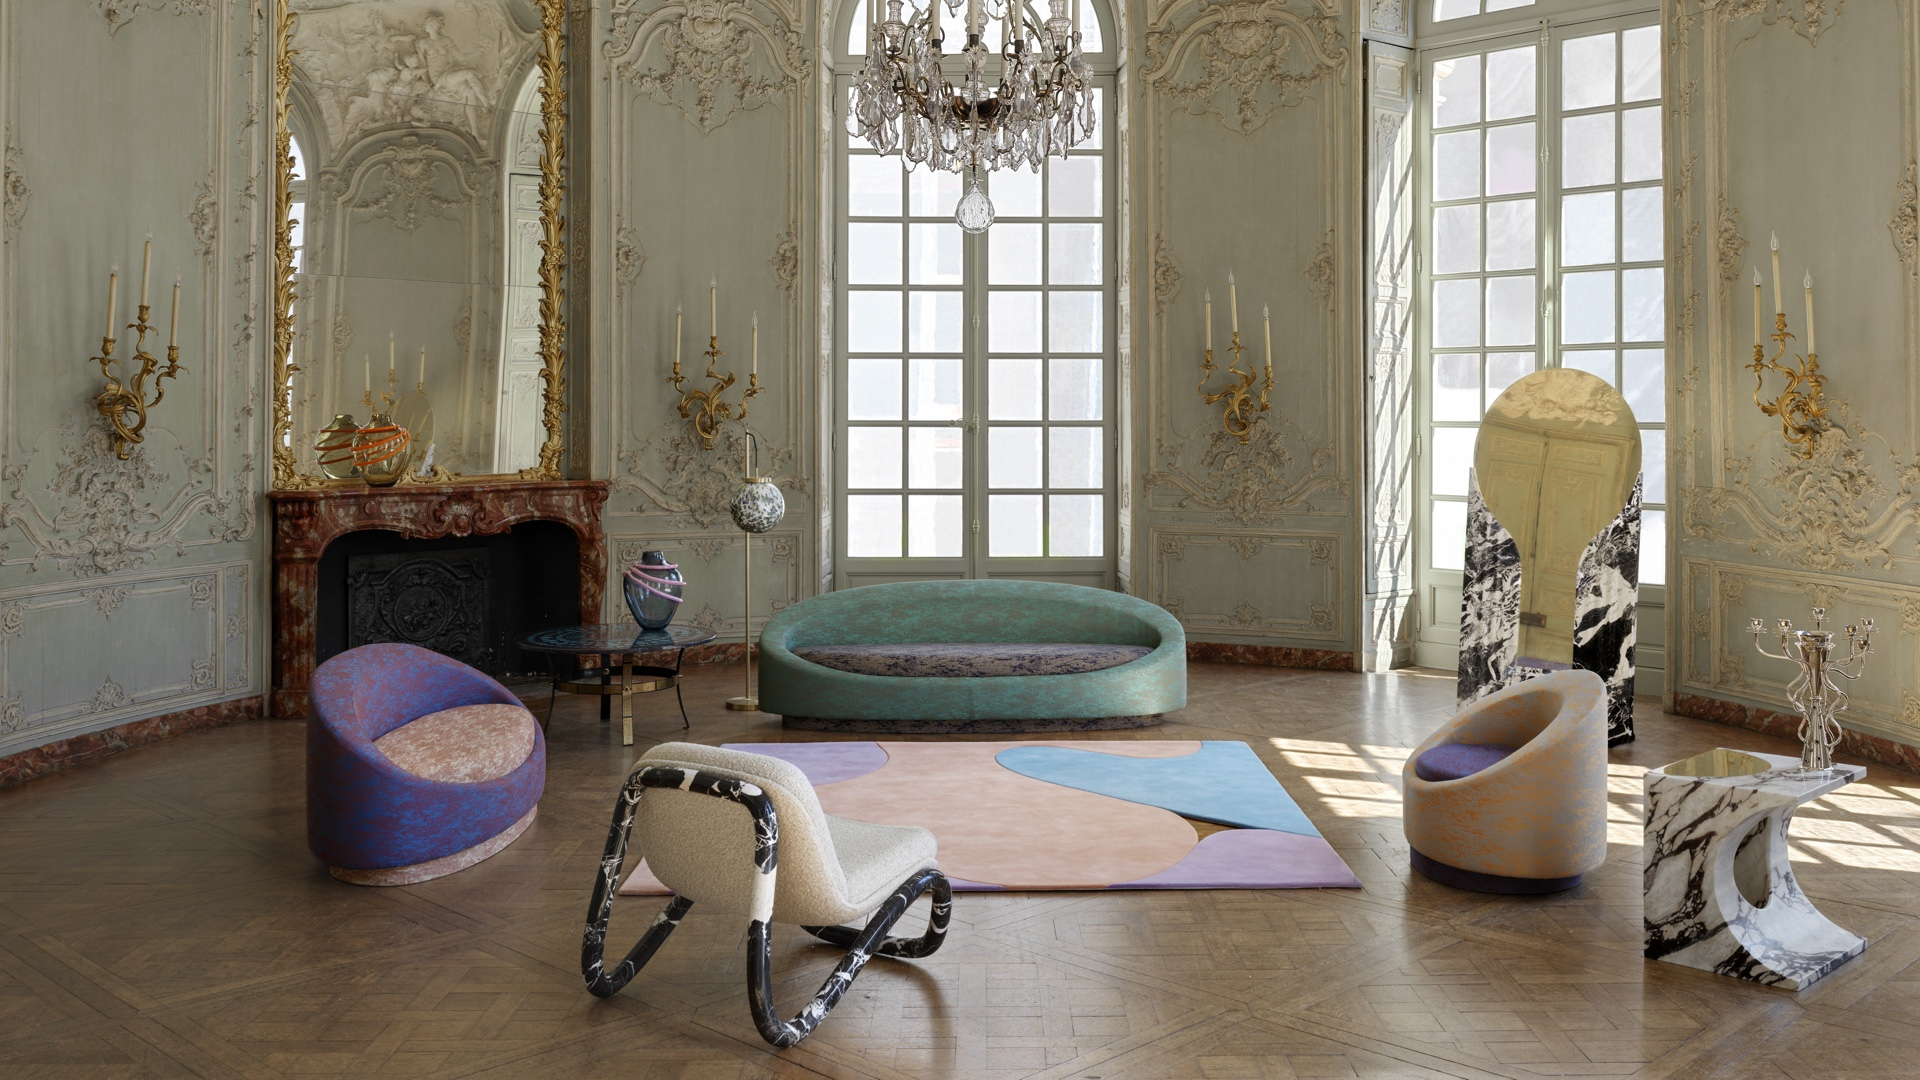 All Around and See Through by Pierre Gonalons at Paris Design Week 2020